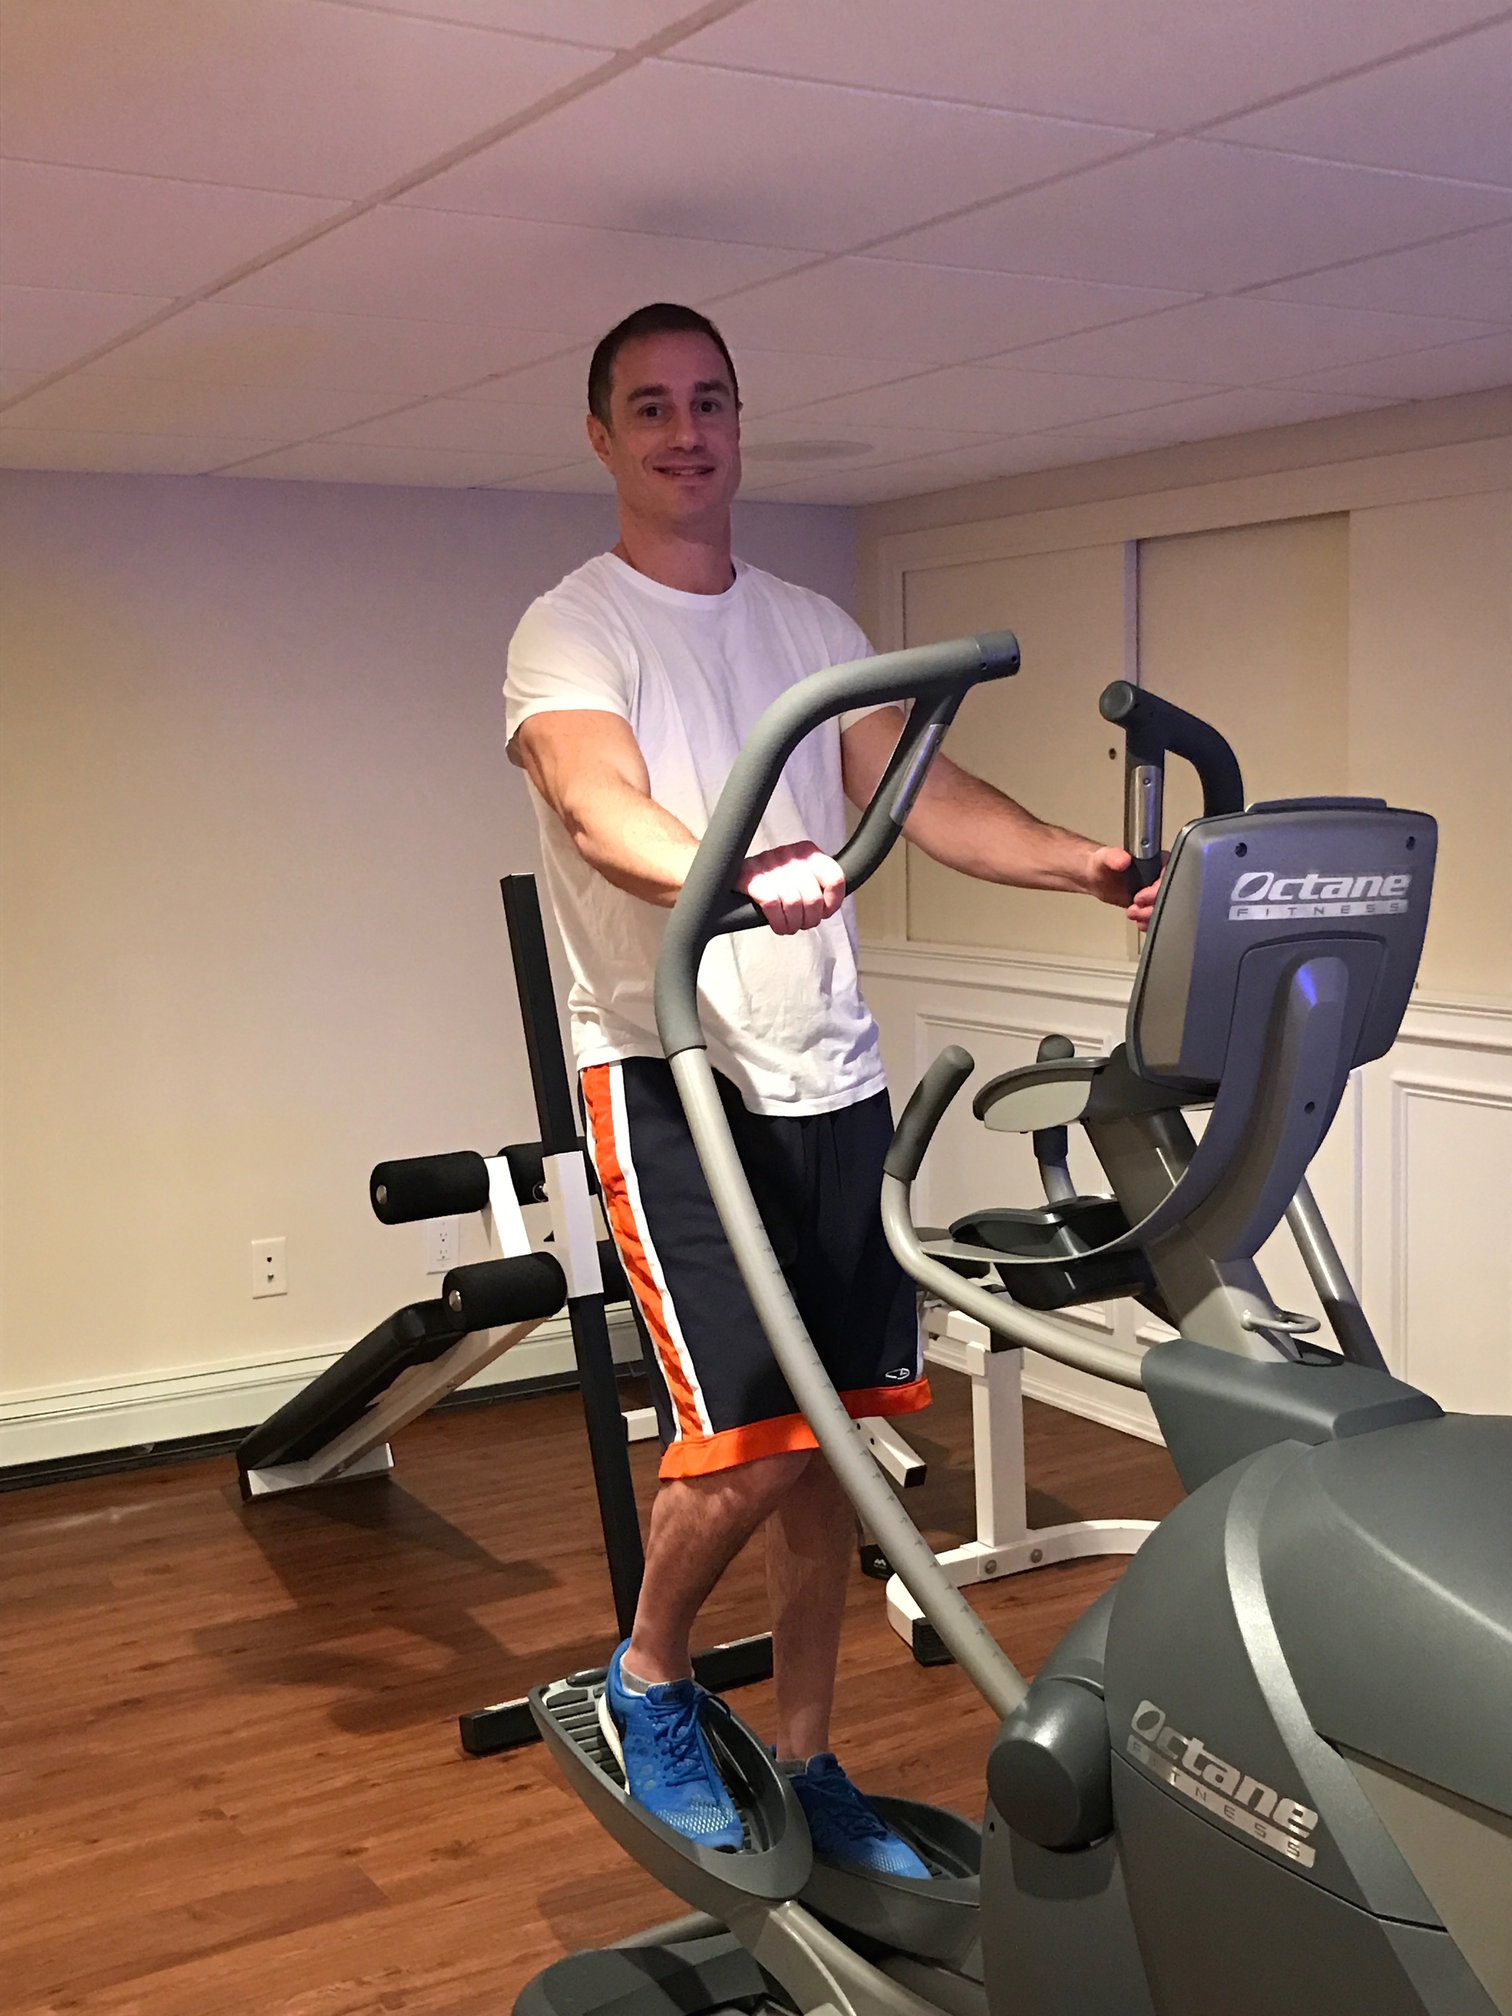 Elliptical Reviews - Our In-House Expert on an Octane Q47 Cross Trainer